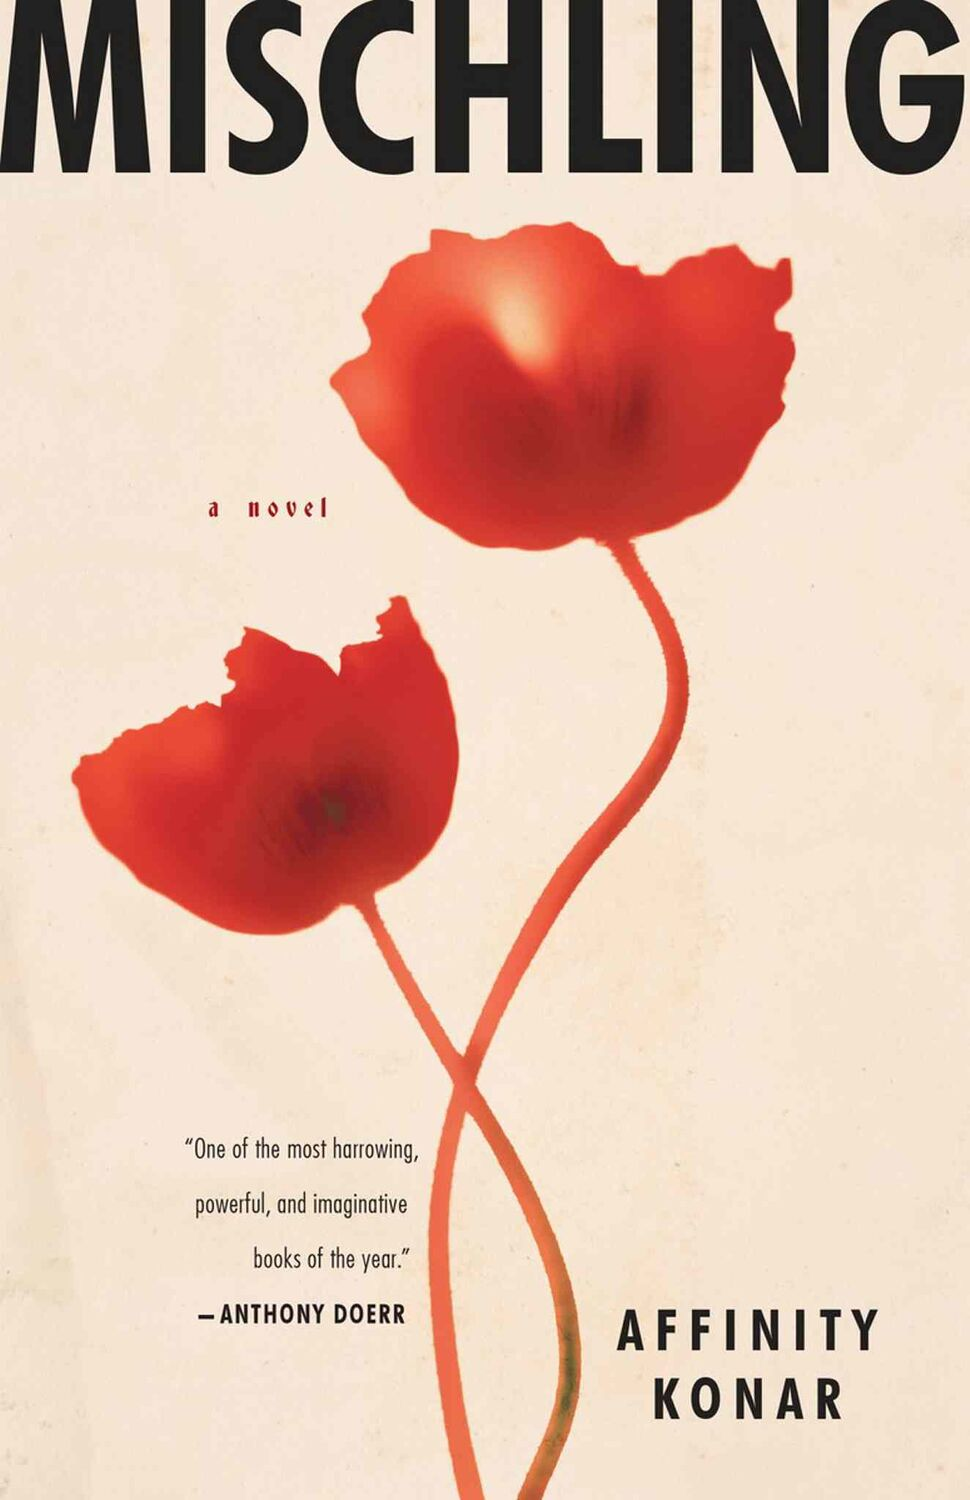 <h3>Mischling</h3> <br/> By Affinity Komar <br/> <strong>Mischling is horrifying, heartbreaking and one of the most brilliant and beautifully written works of fiction this reviewer has ever read. Affinity Konar's story of the bond between Jewish identical twin sisters Pearl and Stasha and their struggle to survive Auschwitz in 1944 effortlessly merges elements of magical realism, extreme brutality and transcendent hope into a haunting and highly original work of fiction.</strong> <br/> — Sharon Chisvin